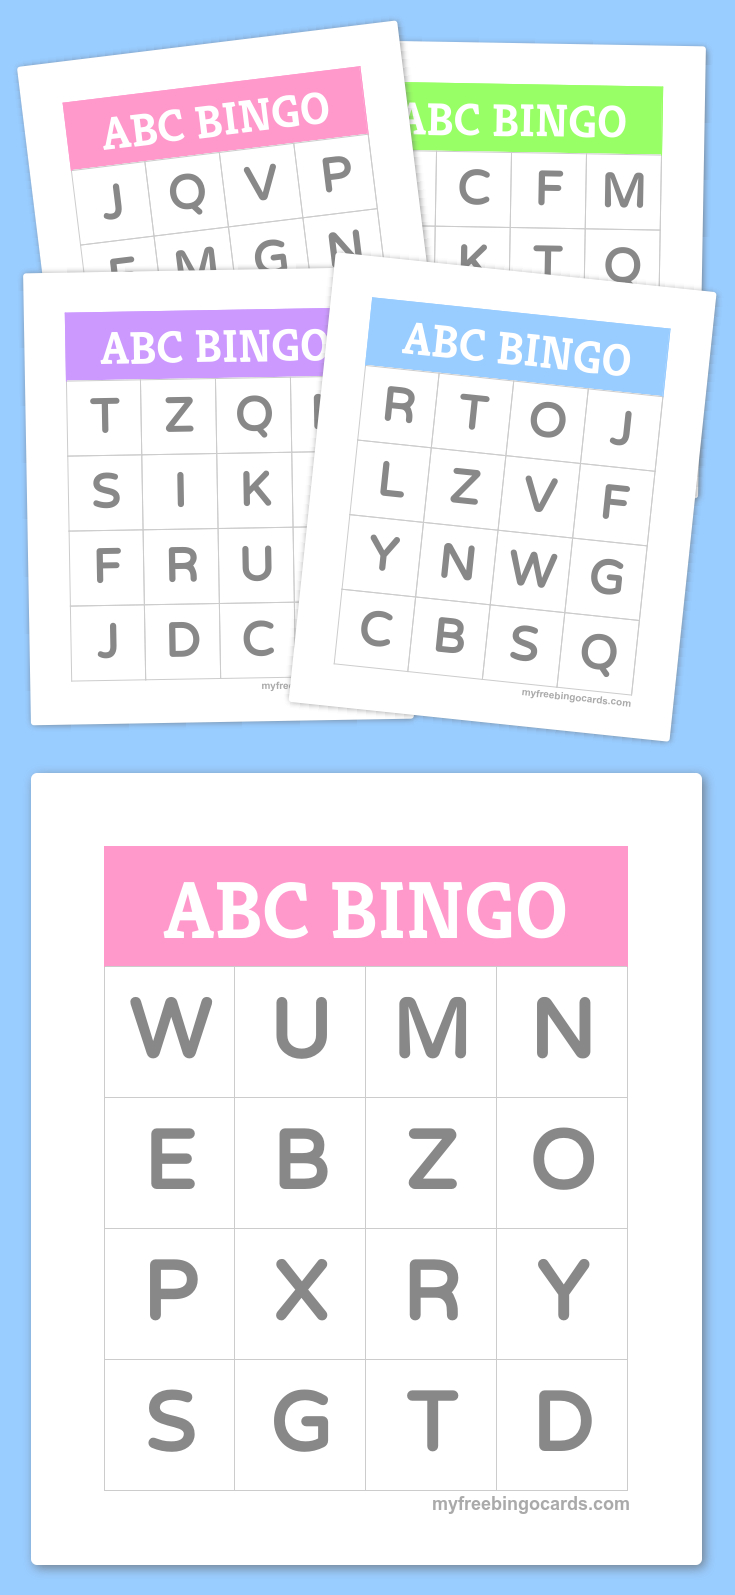 Free Printable Bingo Cards | Bingo Cards | Pinterest | Preschool - Free Printable Spanish Bingo Cards